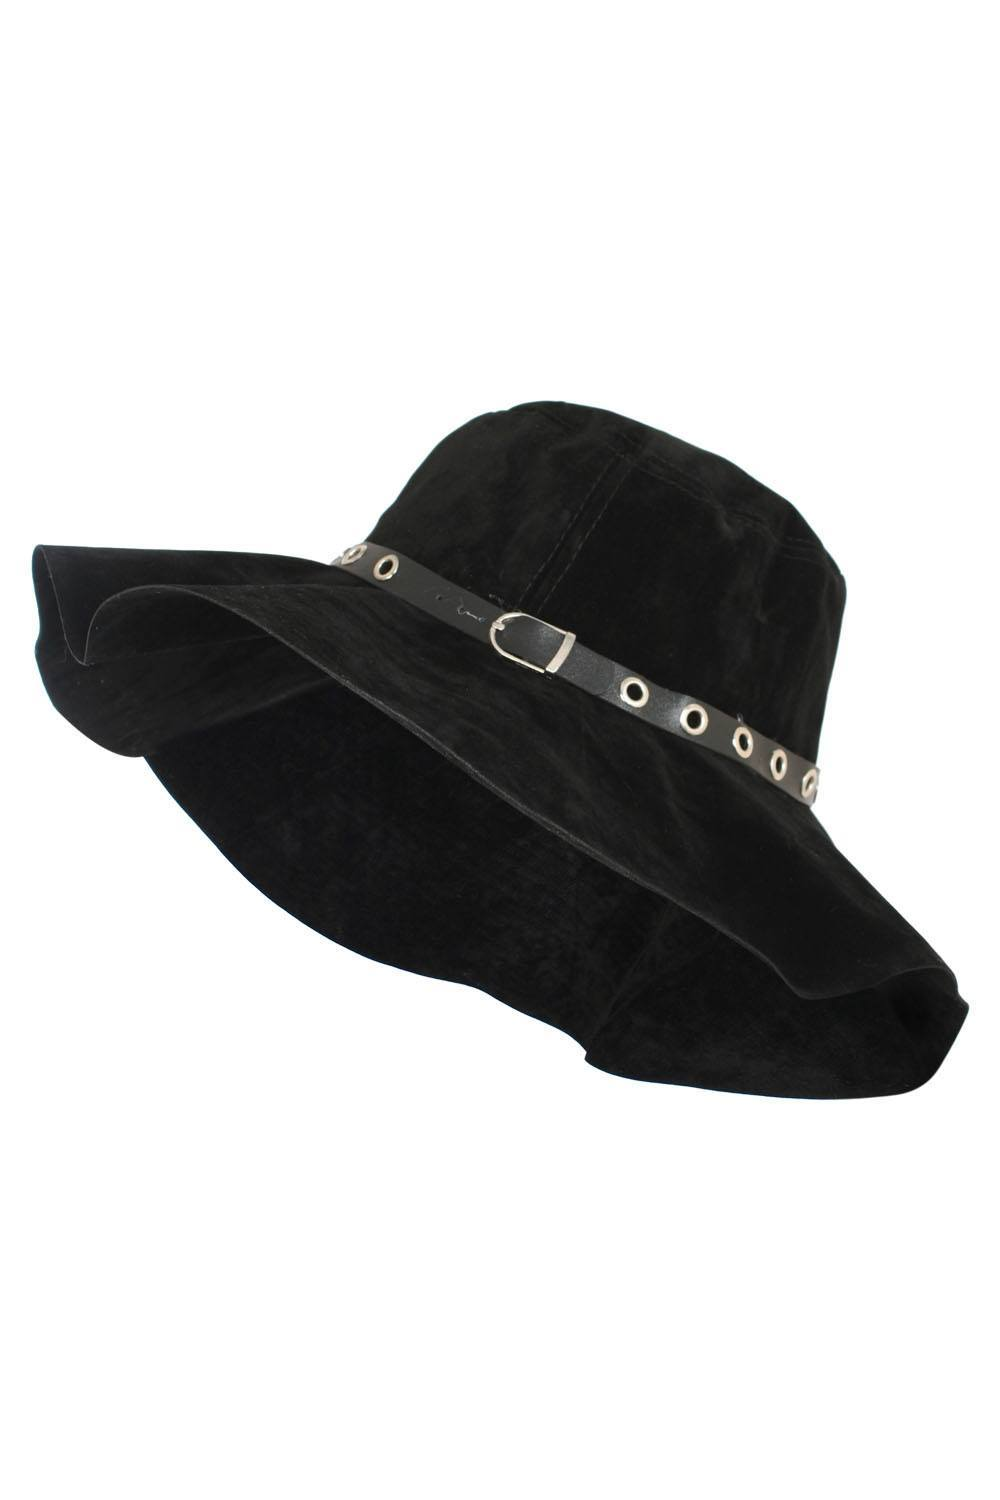 Sabrina Suedette Floppy Hat in Black FRONT